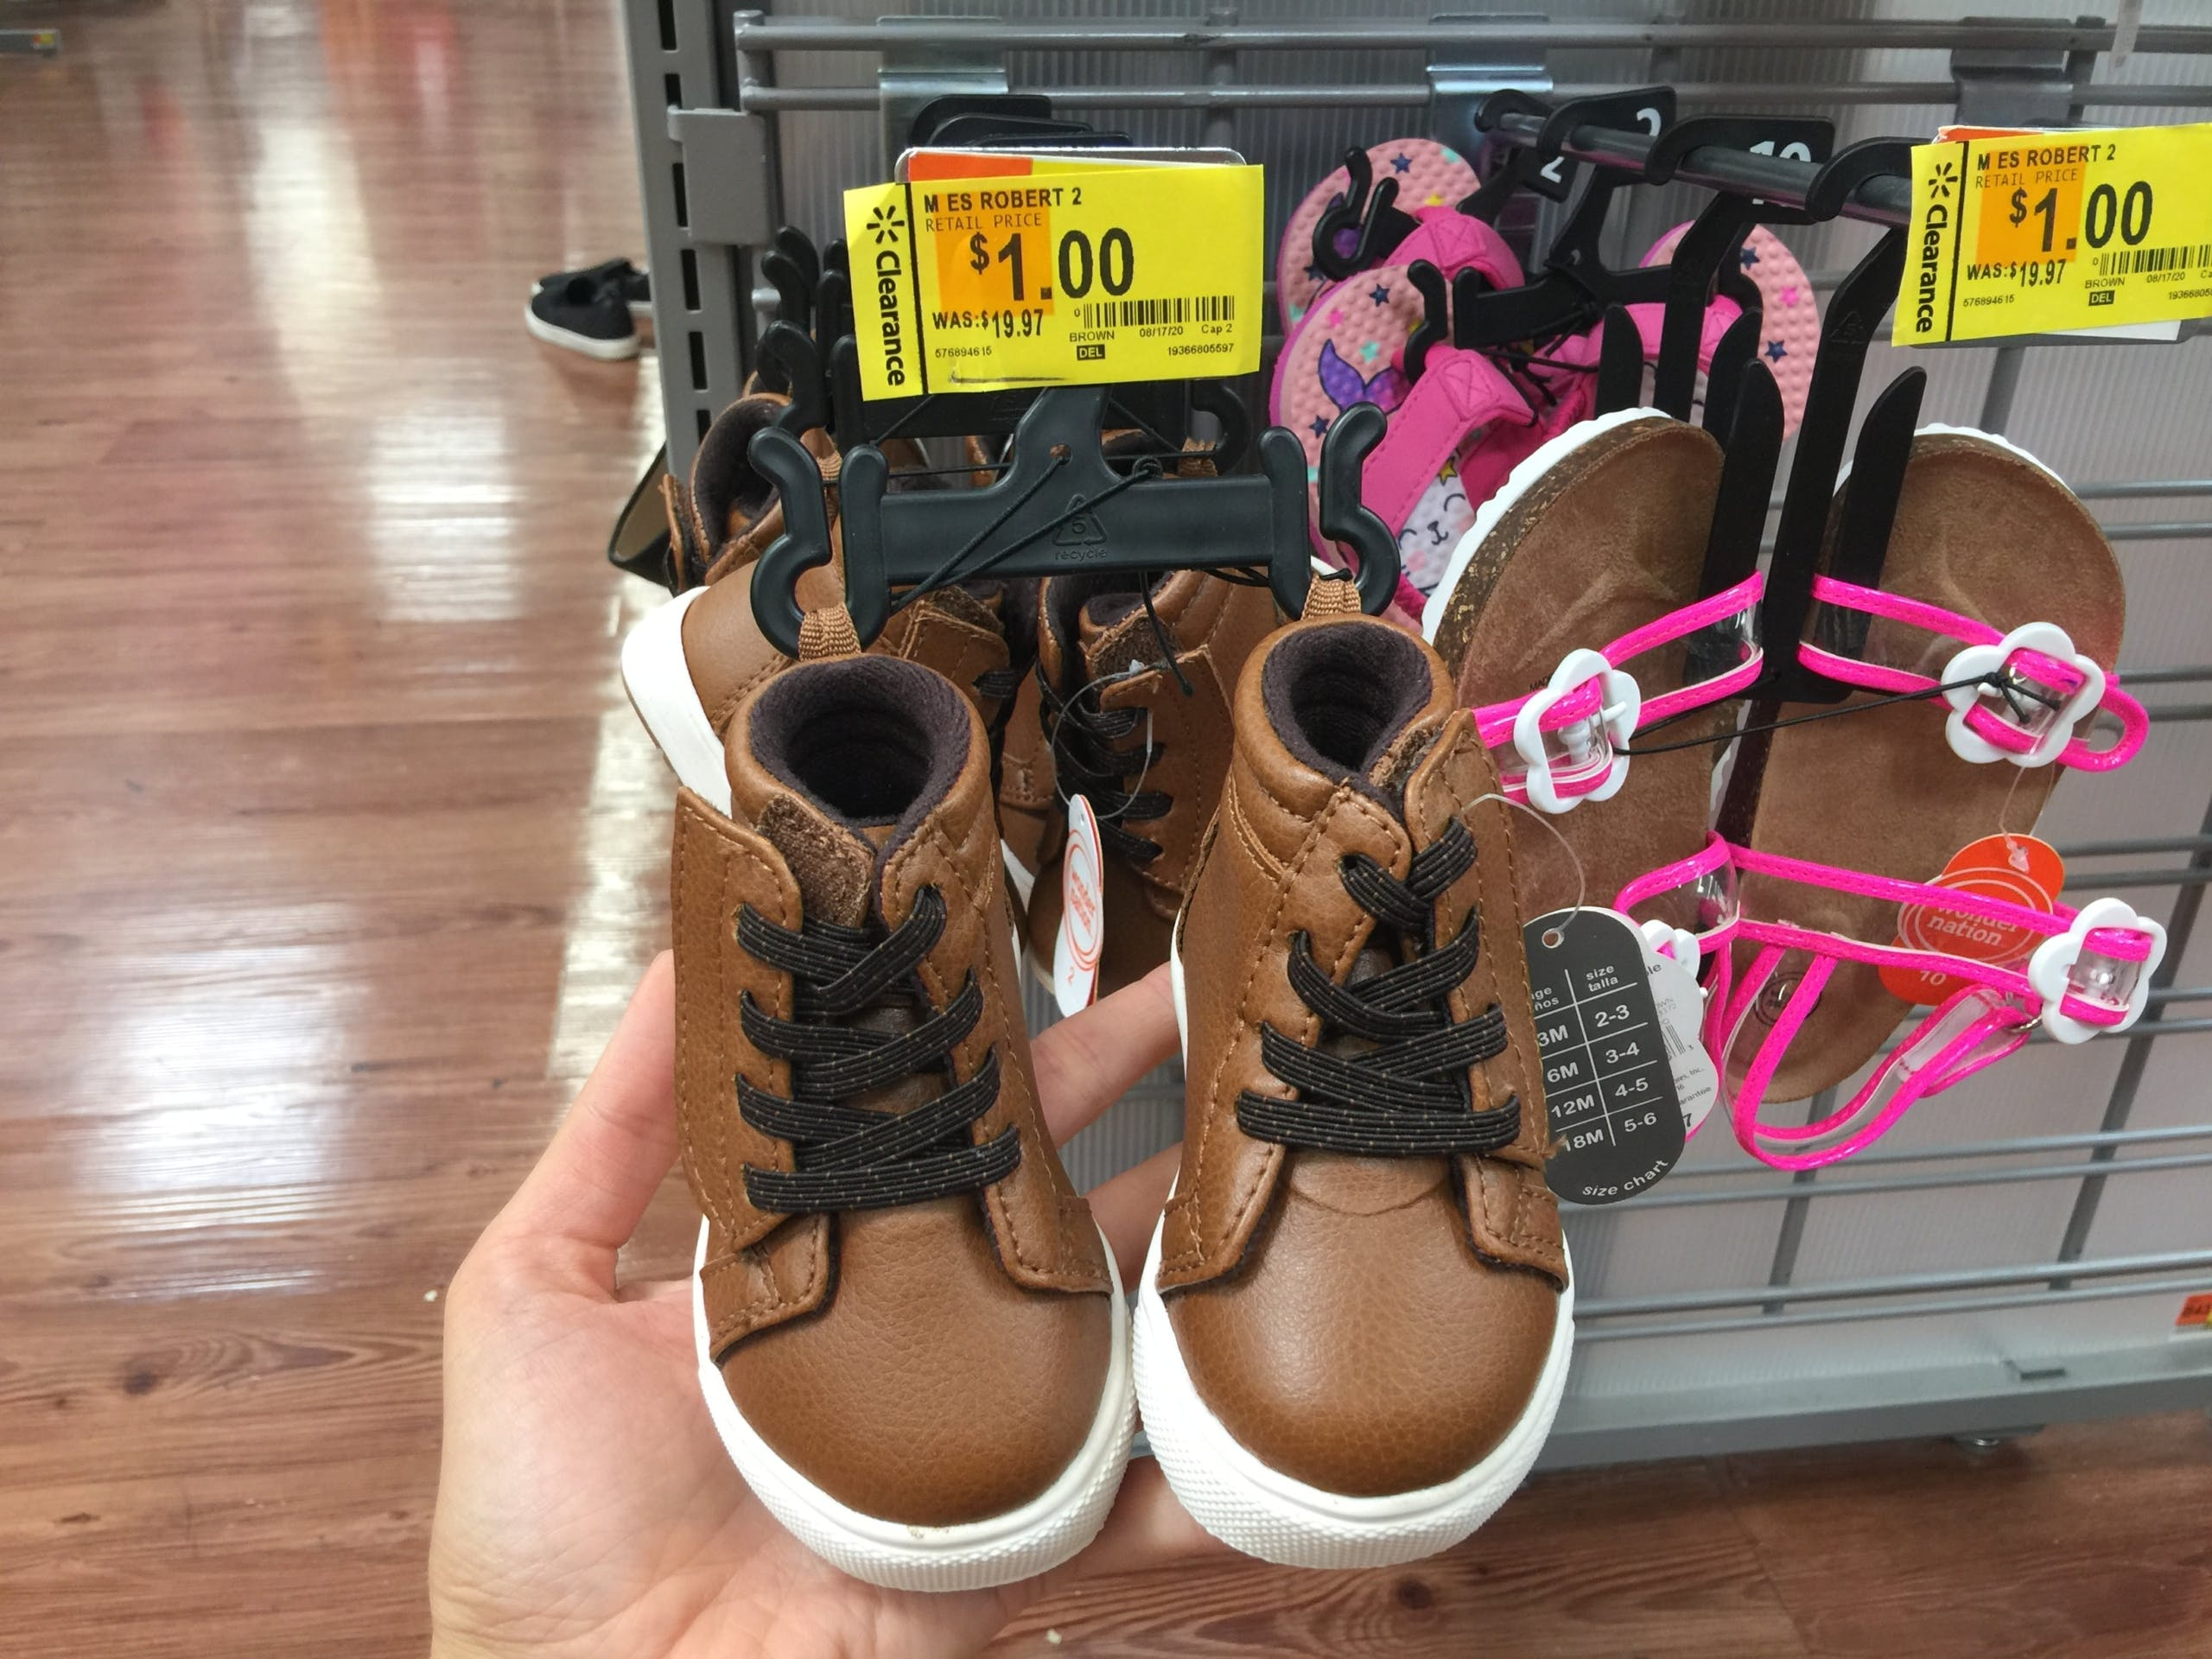 $1 Kids' Shoes at Walmart Stores